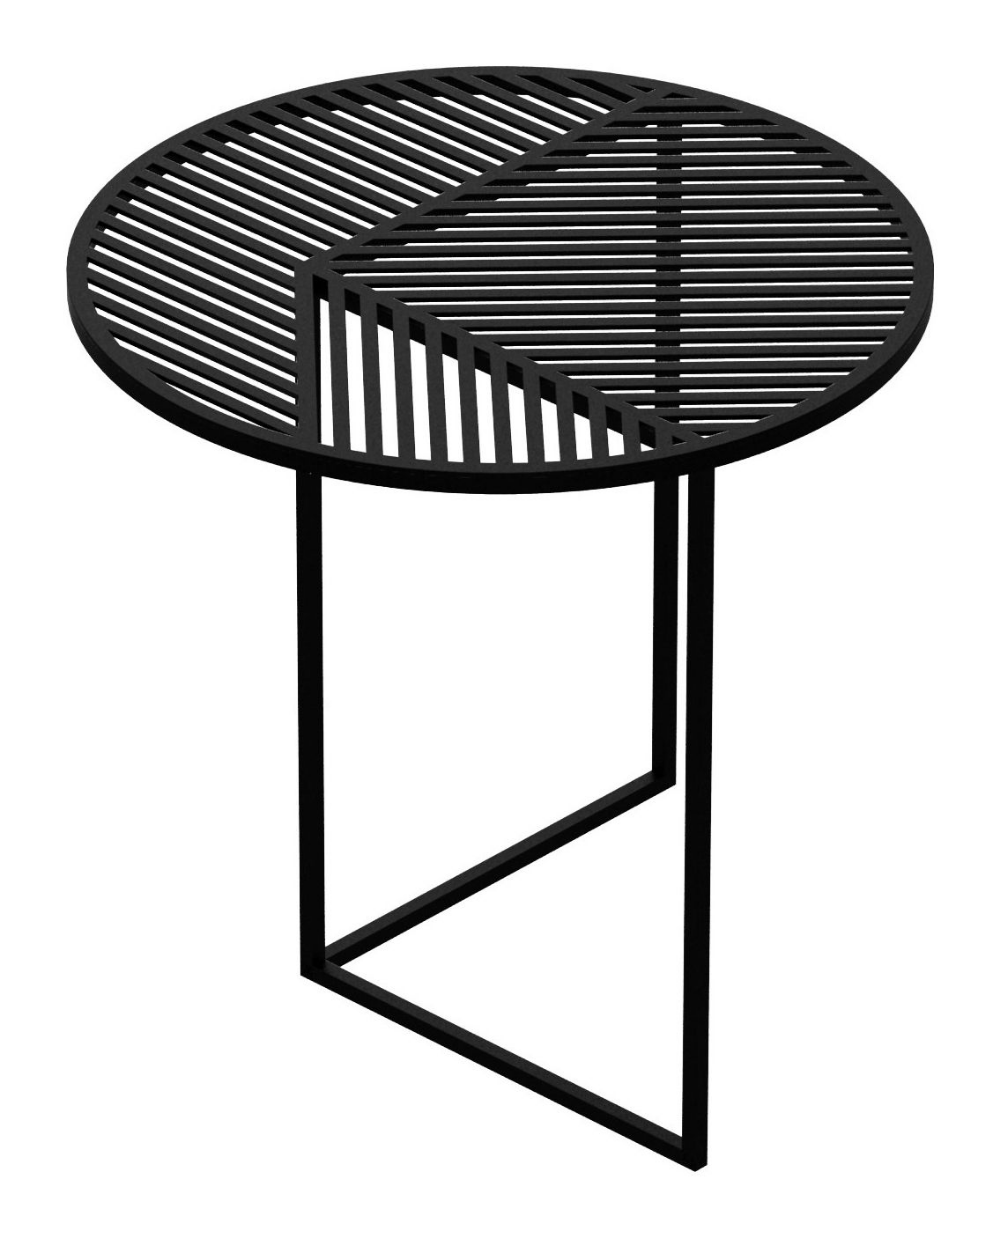 Petite Friture Iso A Coffee Table Black Made In Design Uk Table Coffee Table White Coffee Table [ 1238 x 1000 Pixel ]